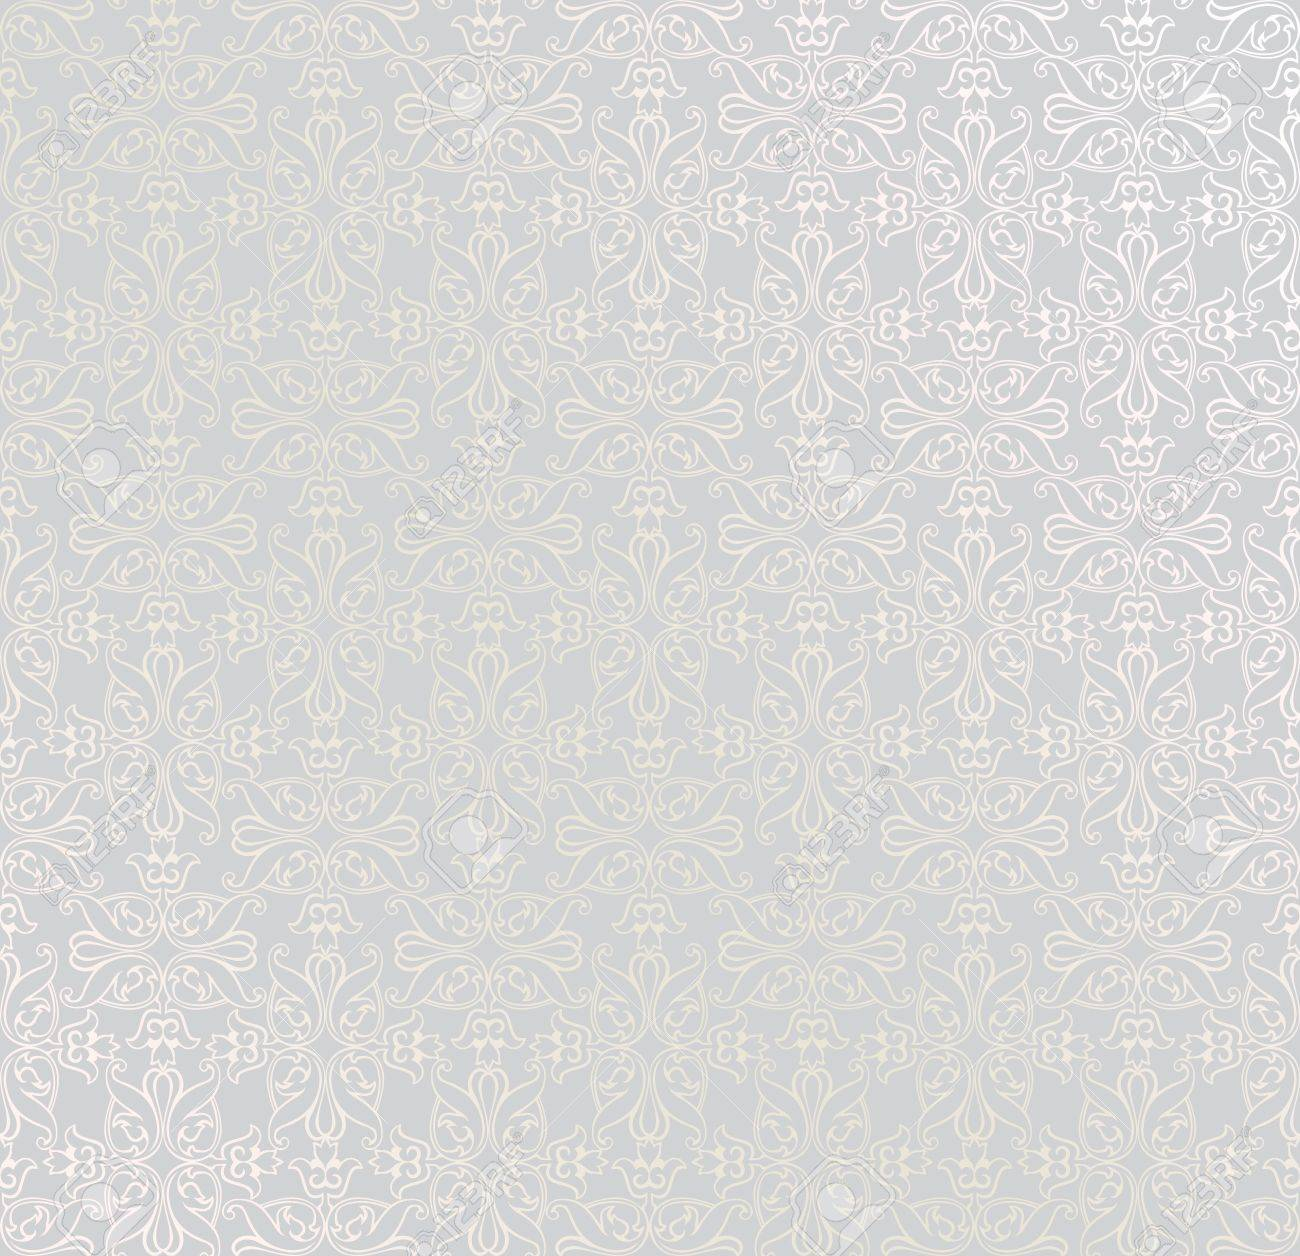 Silver seamless pattern for page decoration  Vintage Vector Design Ornament Stock Vector - 17576371